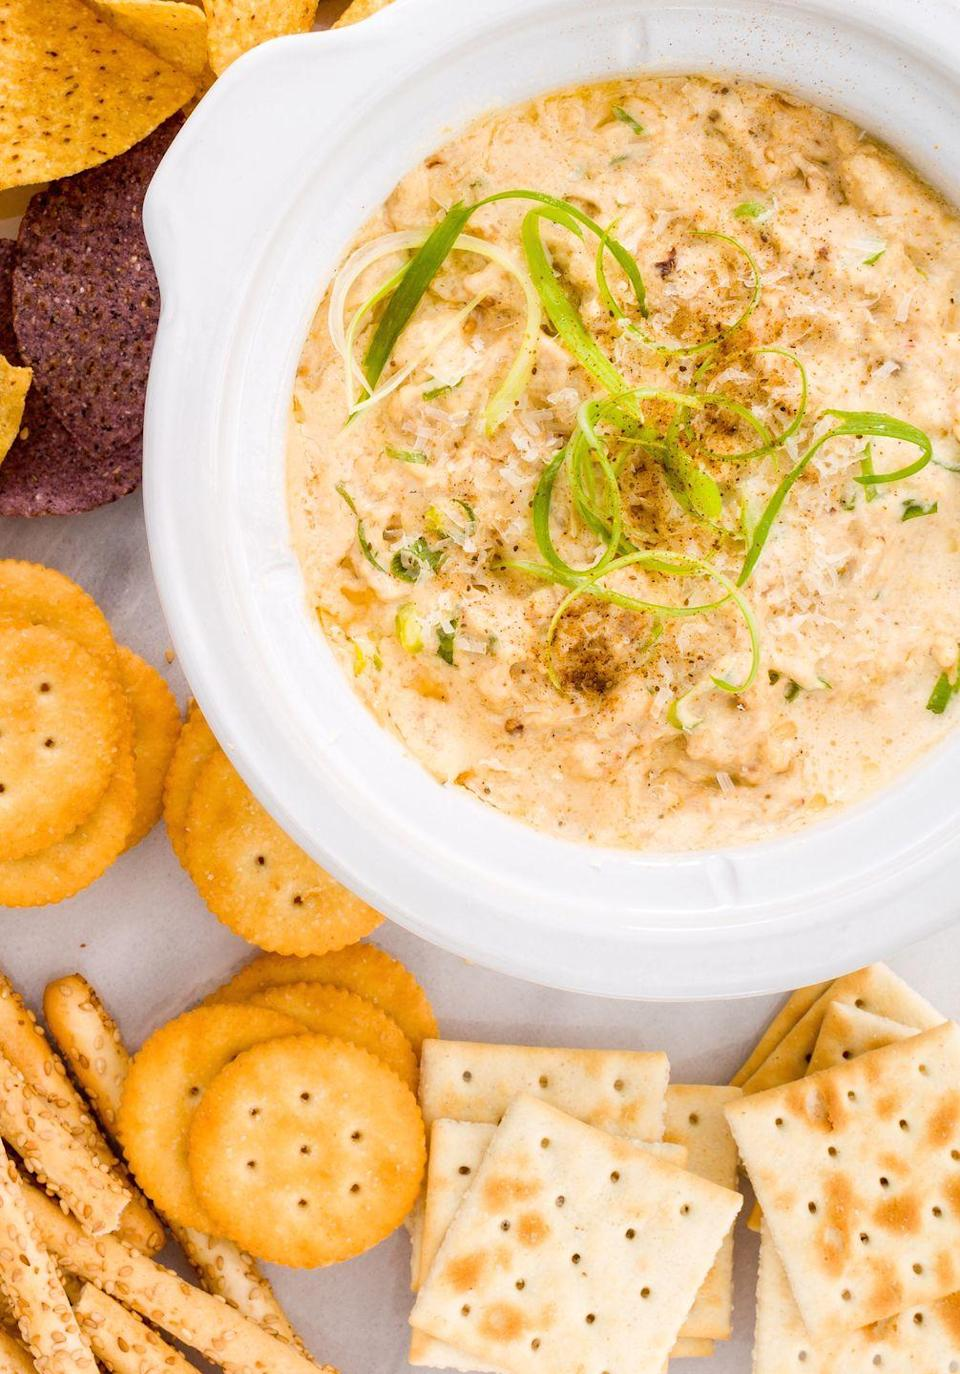 """<p>Crab dip is always a classy choice for an appetizer spread.</p><p>Get the recipe from <a href=""""https://www.delish.com/cooking/recipe-ideas/recipes/a44678/slow-cooker-crab-dip-recipe/"""" rel=""""nofollow noopener"""" target=""""_blank"""" data-ylk=""""slk:Delish"""" class=""""link rapid-noclick-resp"""">Delish</a>.</p>"""